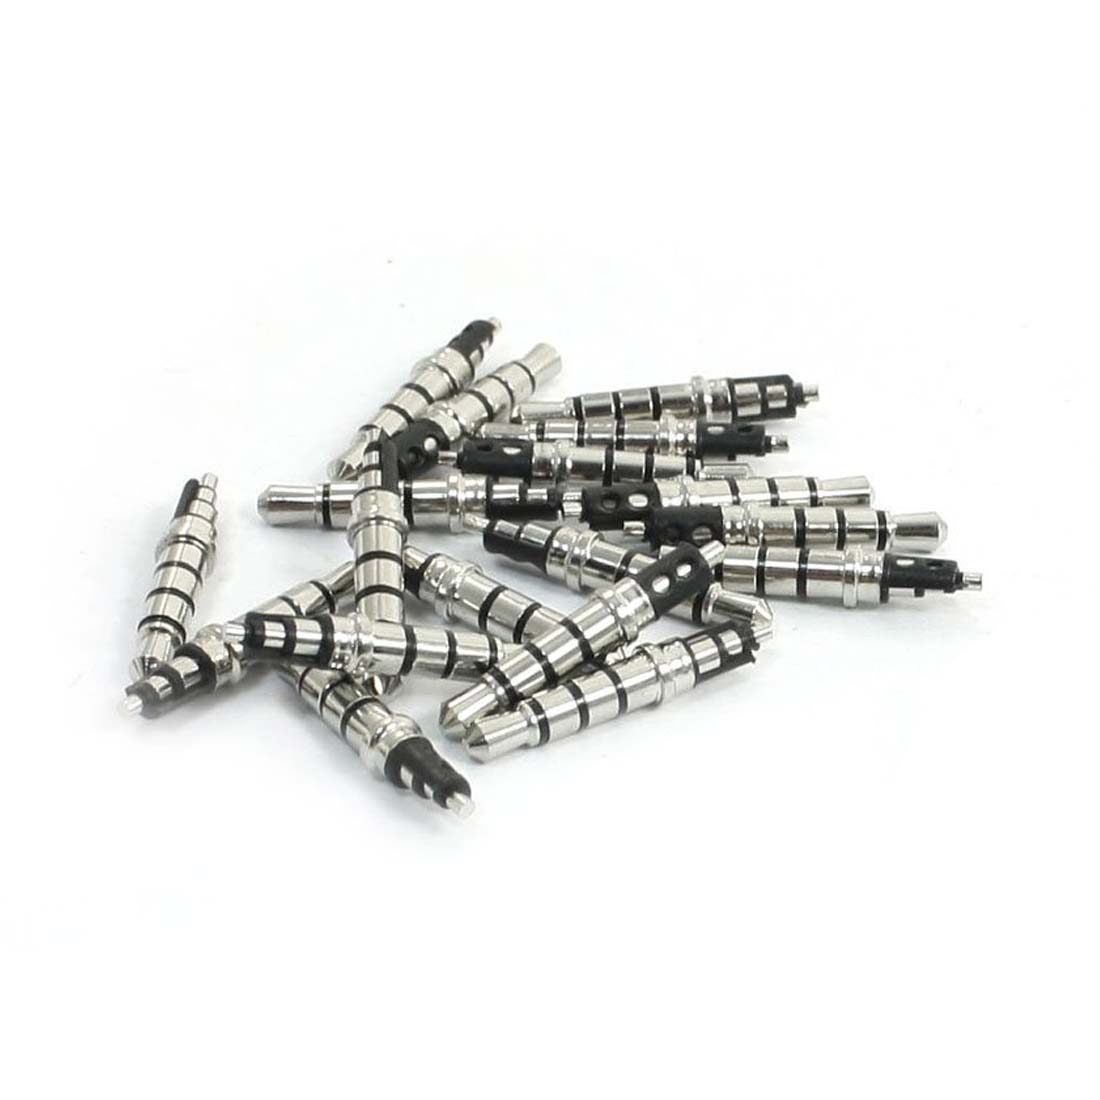 JFBL Hot 20 Pcs 3.5mm 4 Pole Male Soldering Repair Headphone Audio Jack Plug dali zensor 7 black ash